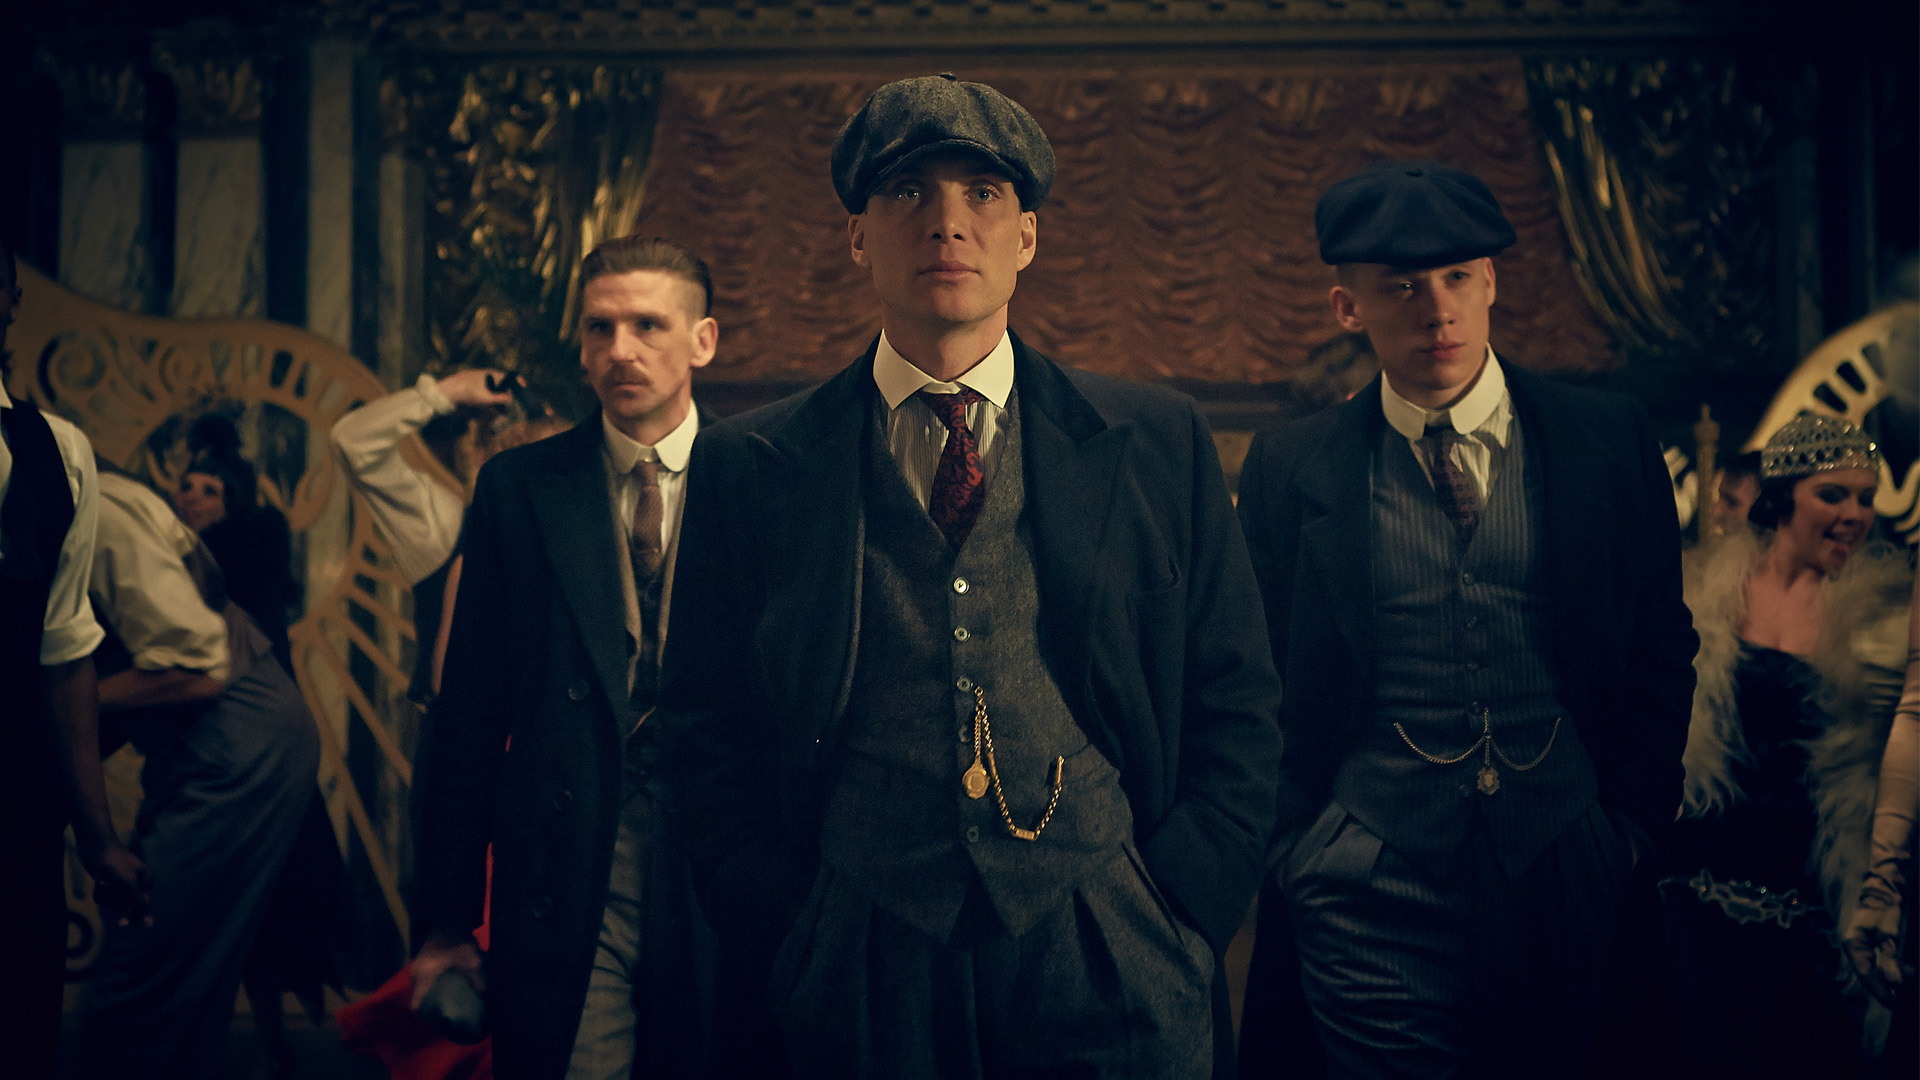 Peaky Blinders HD Wallpapers for desktop download 1920x1080